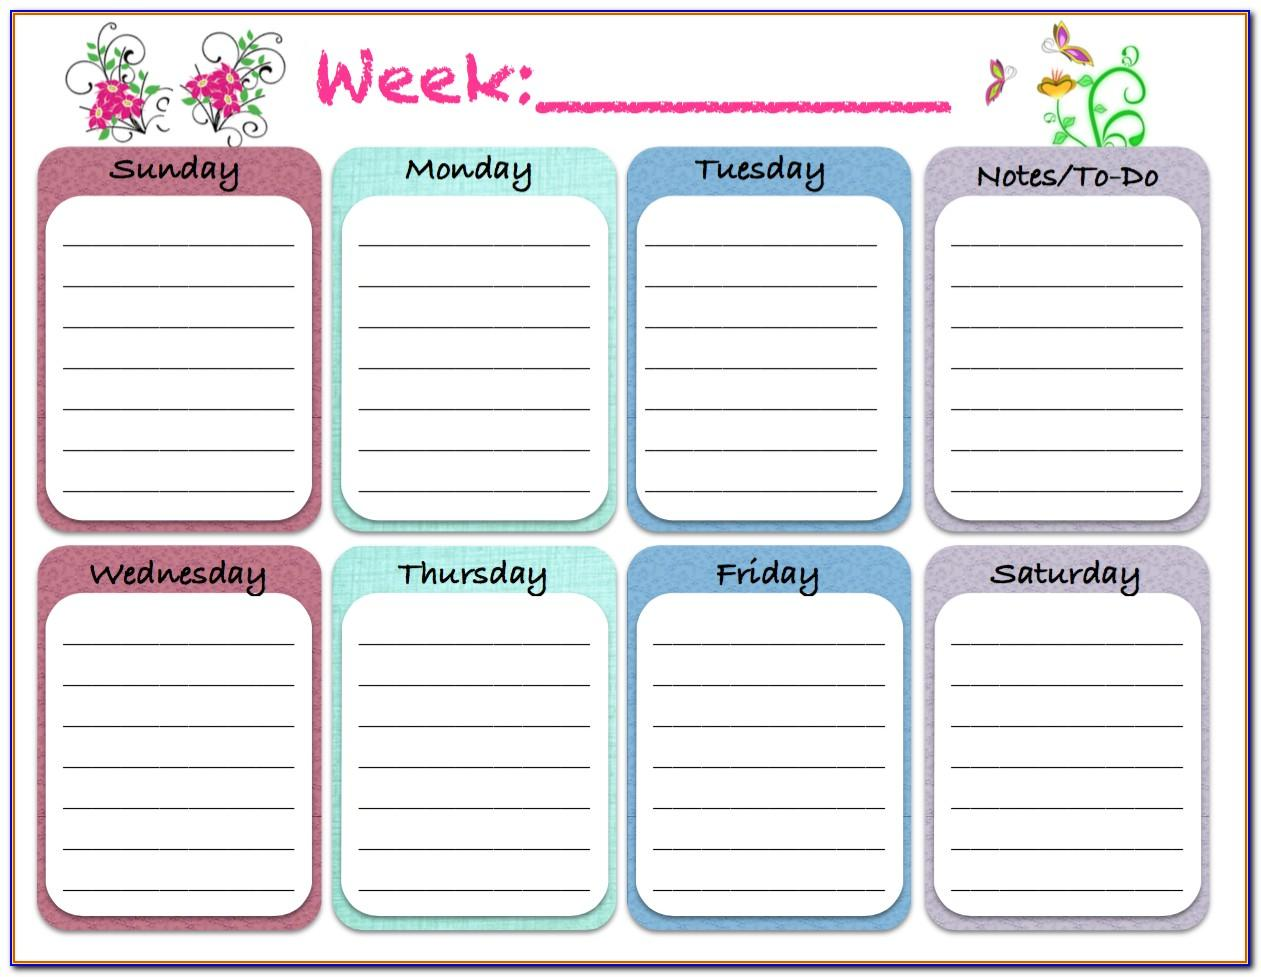 Week Planning Template Excel